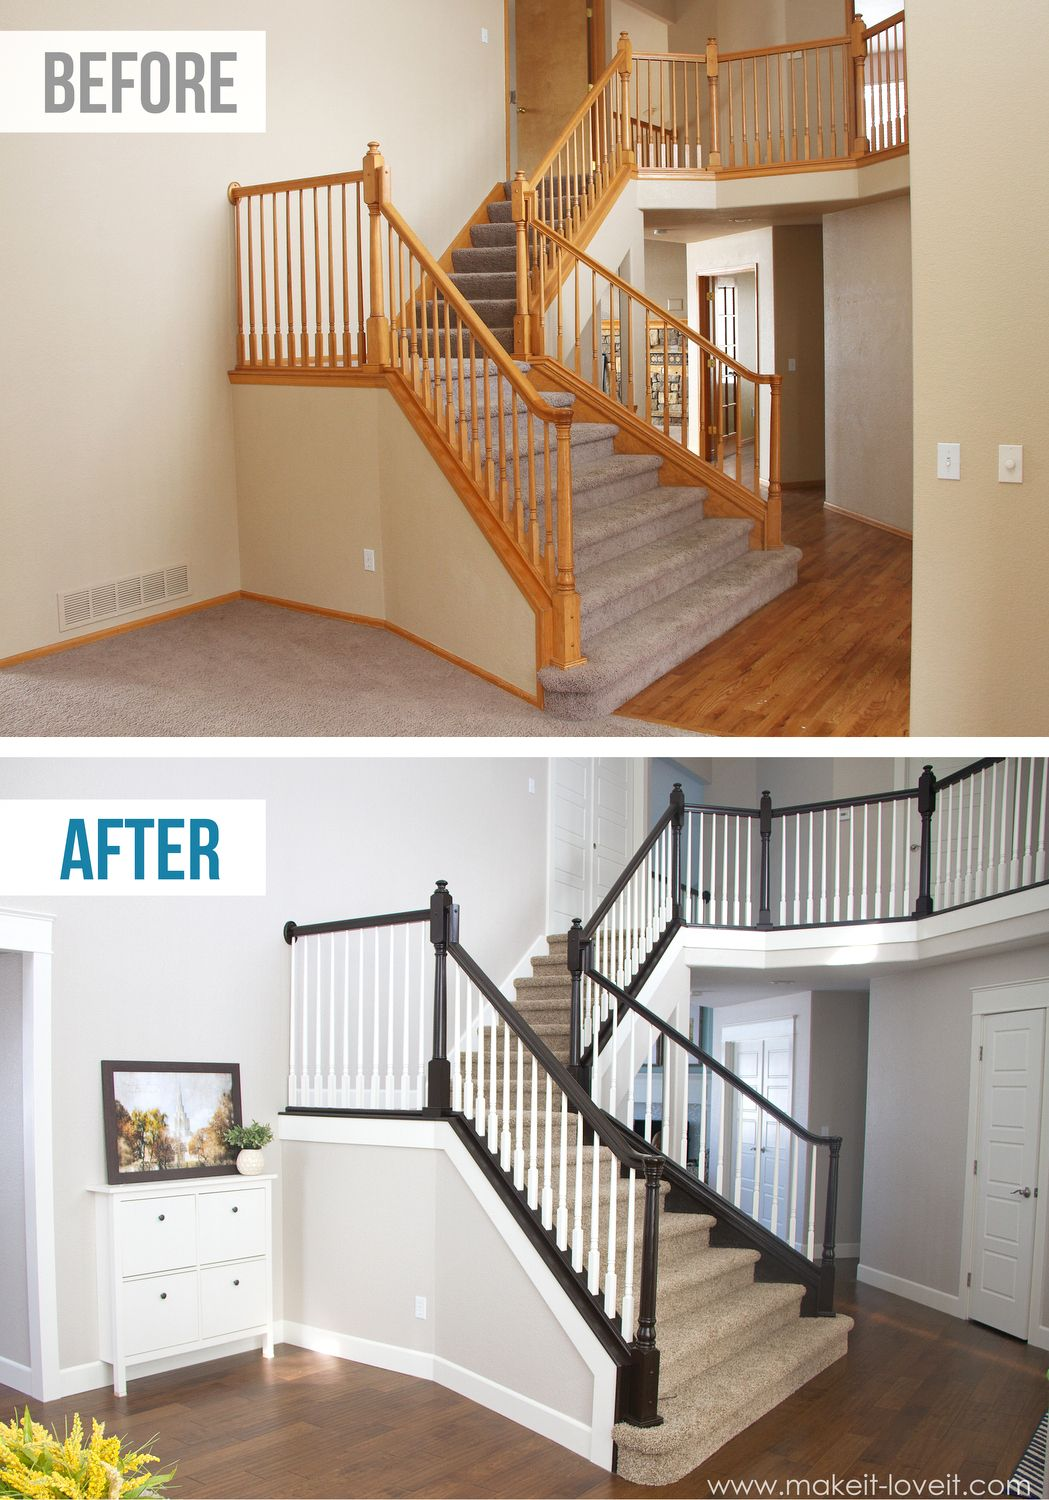 Diy How To Stain And Paint An Oak Banister Spindles And